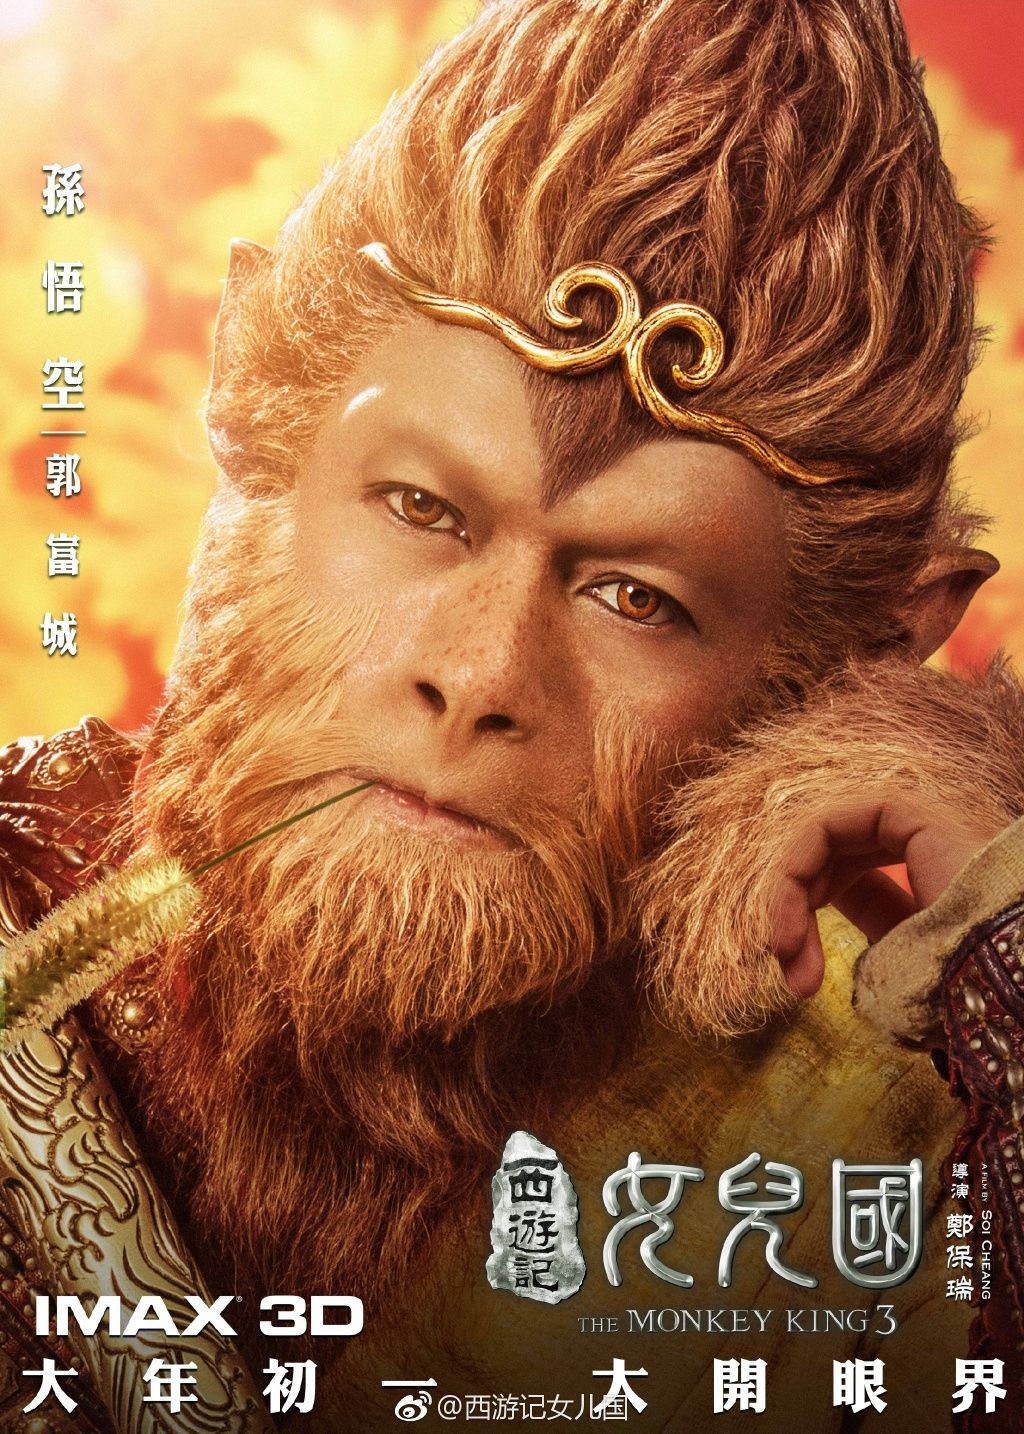 Aaron Kwok as Sun Wu Kong - Movie quotes in 2019 - Monkey ...